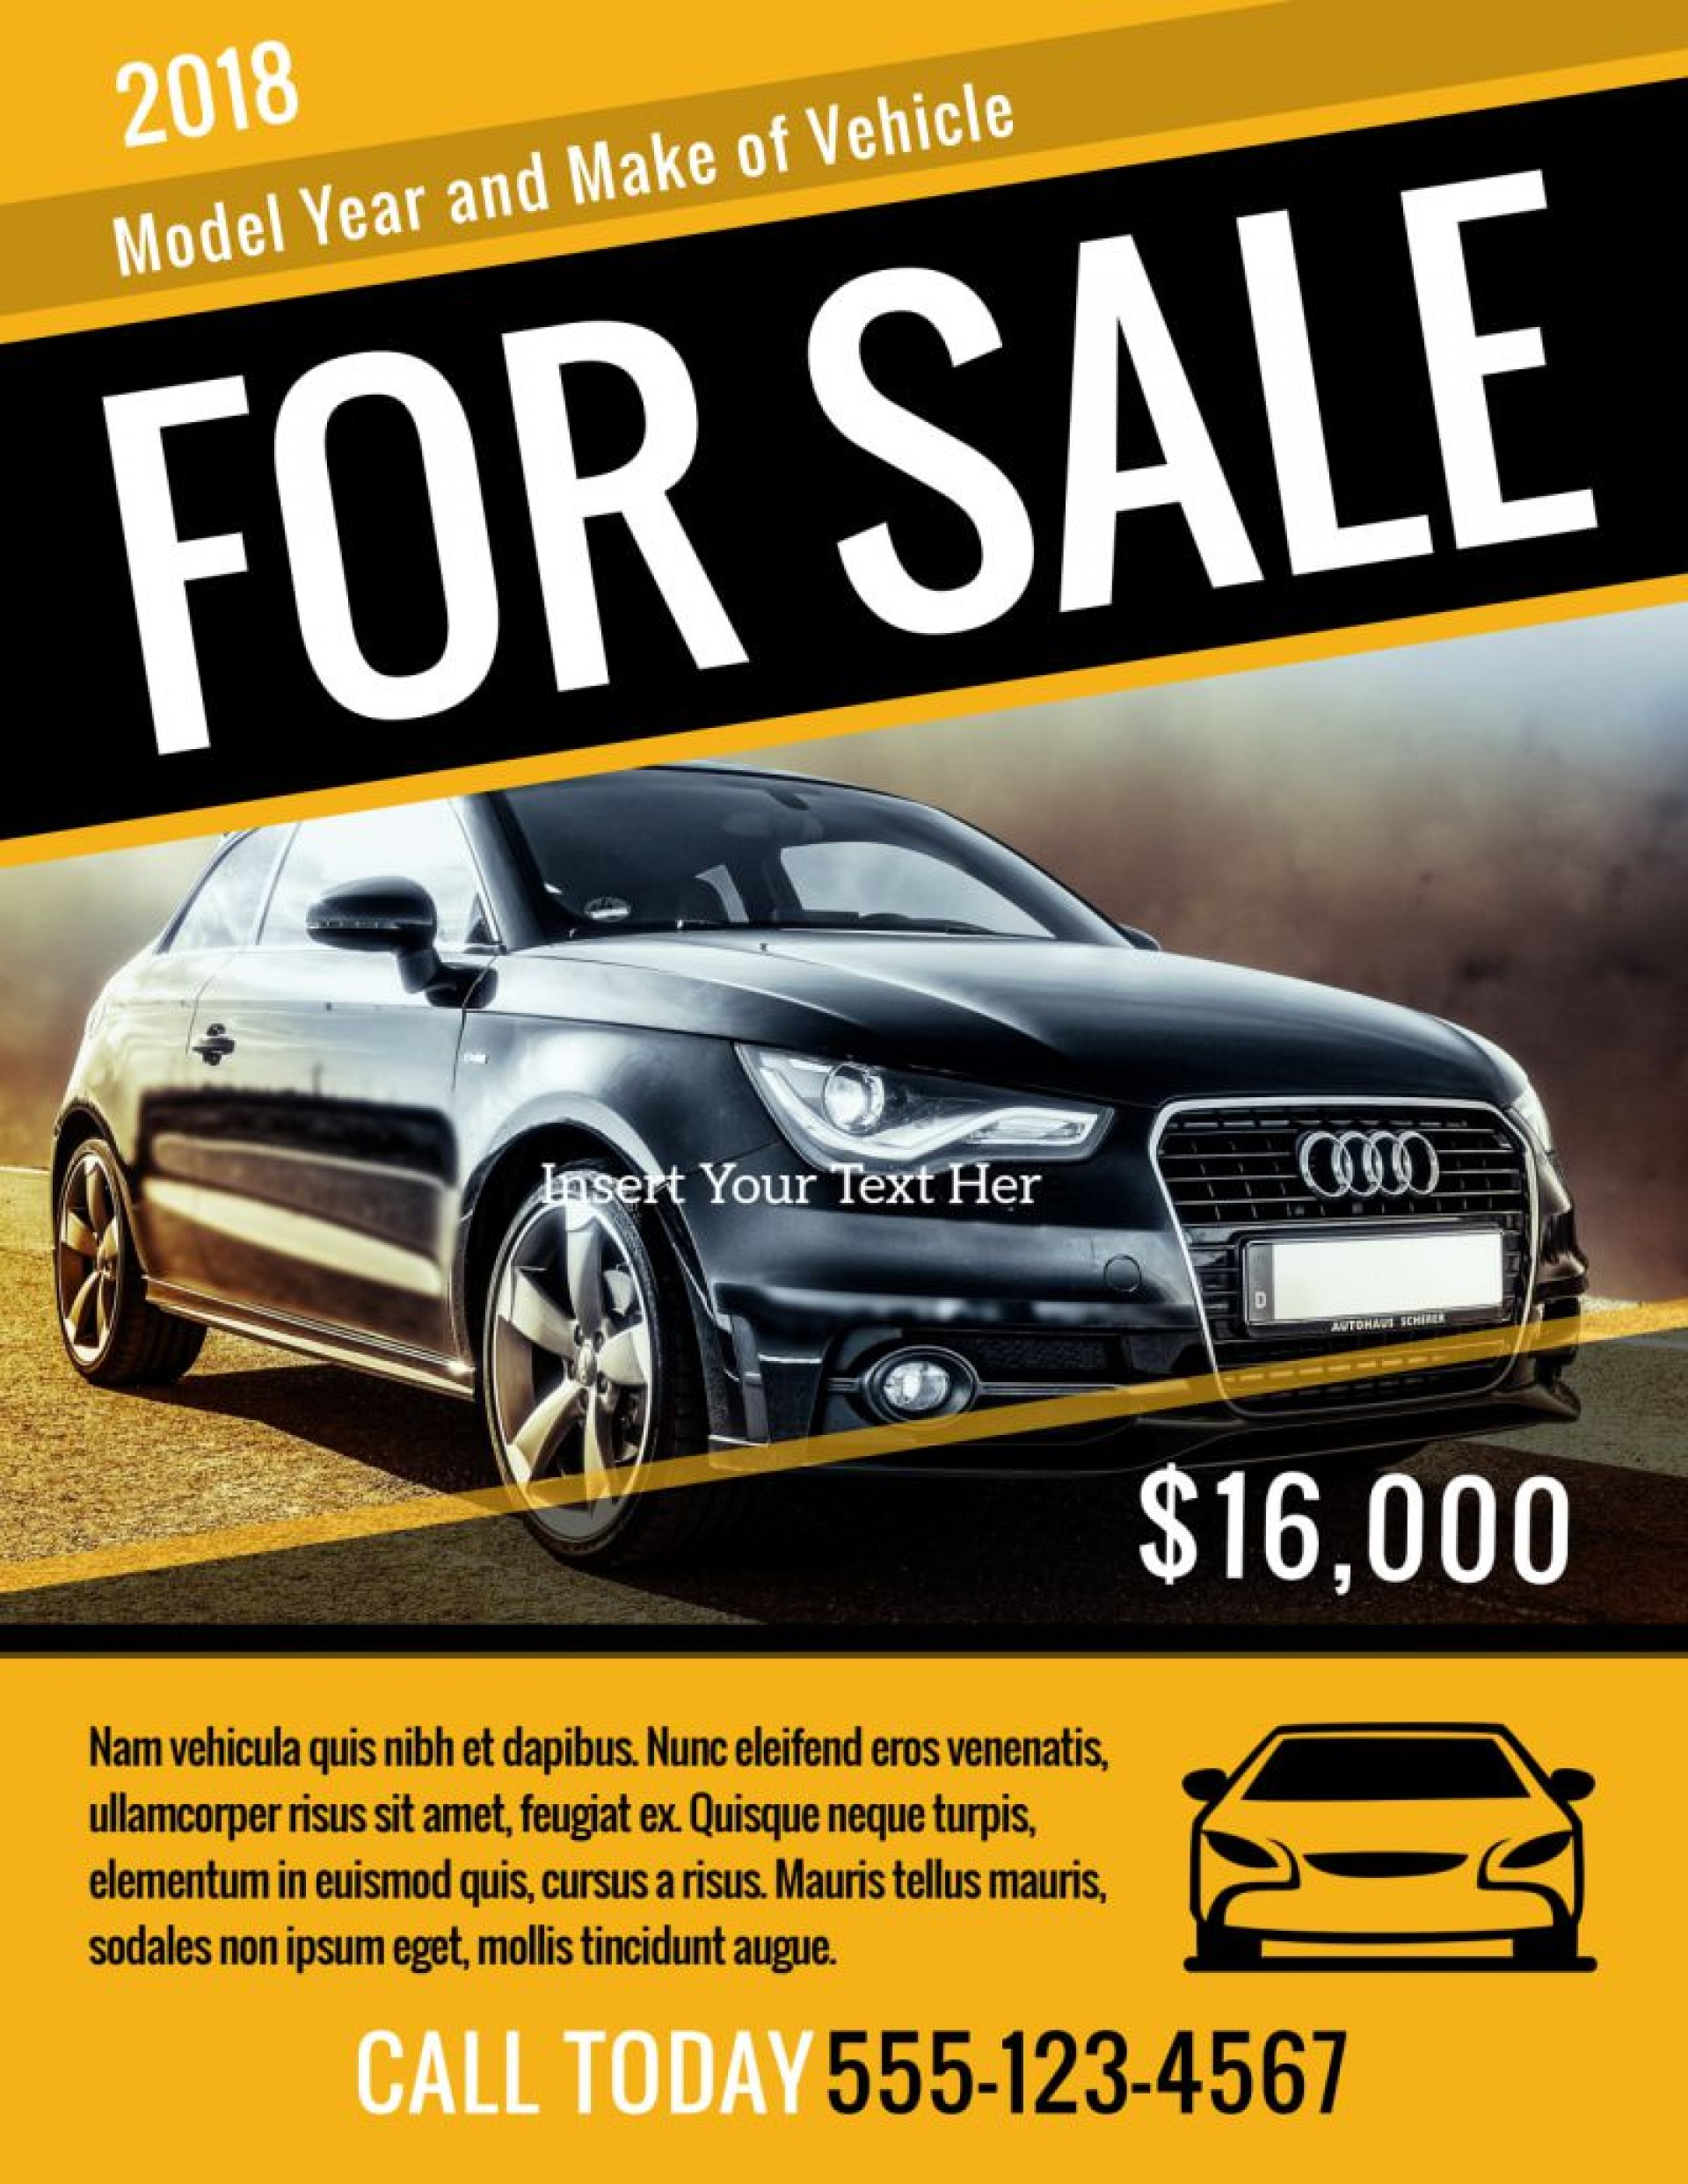 004 Best For Sale Flyer Template Design  Car Ad Microsoft Word House1920